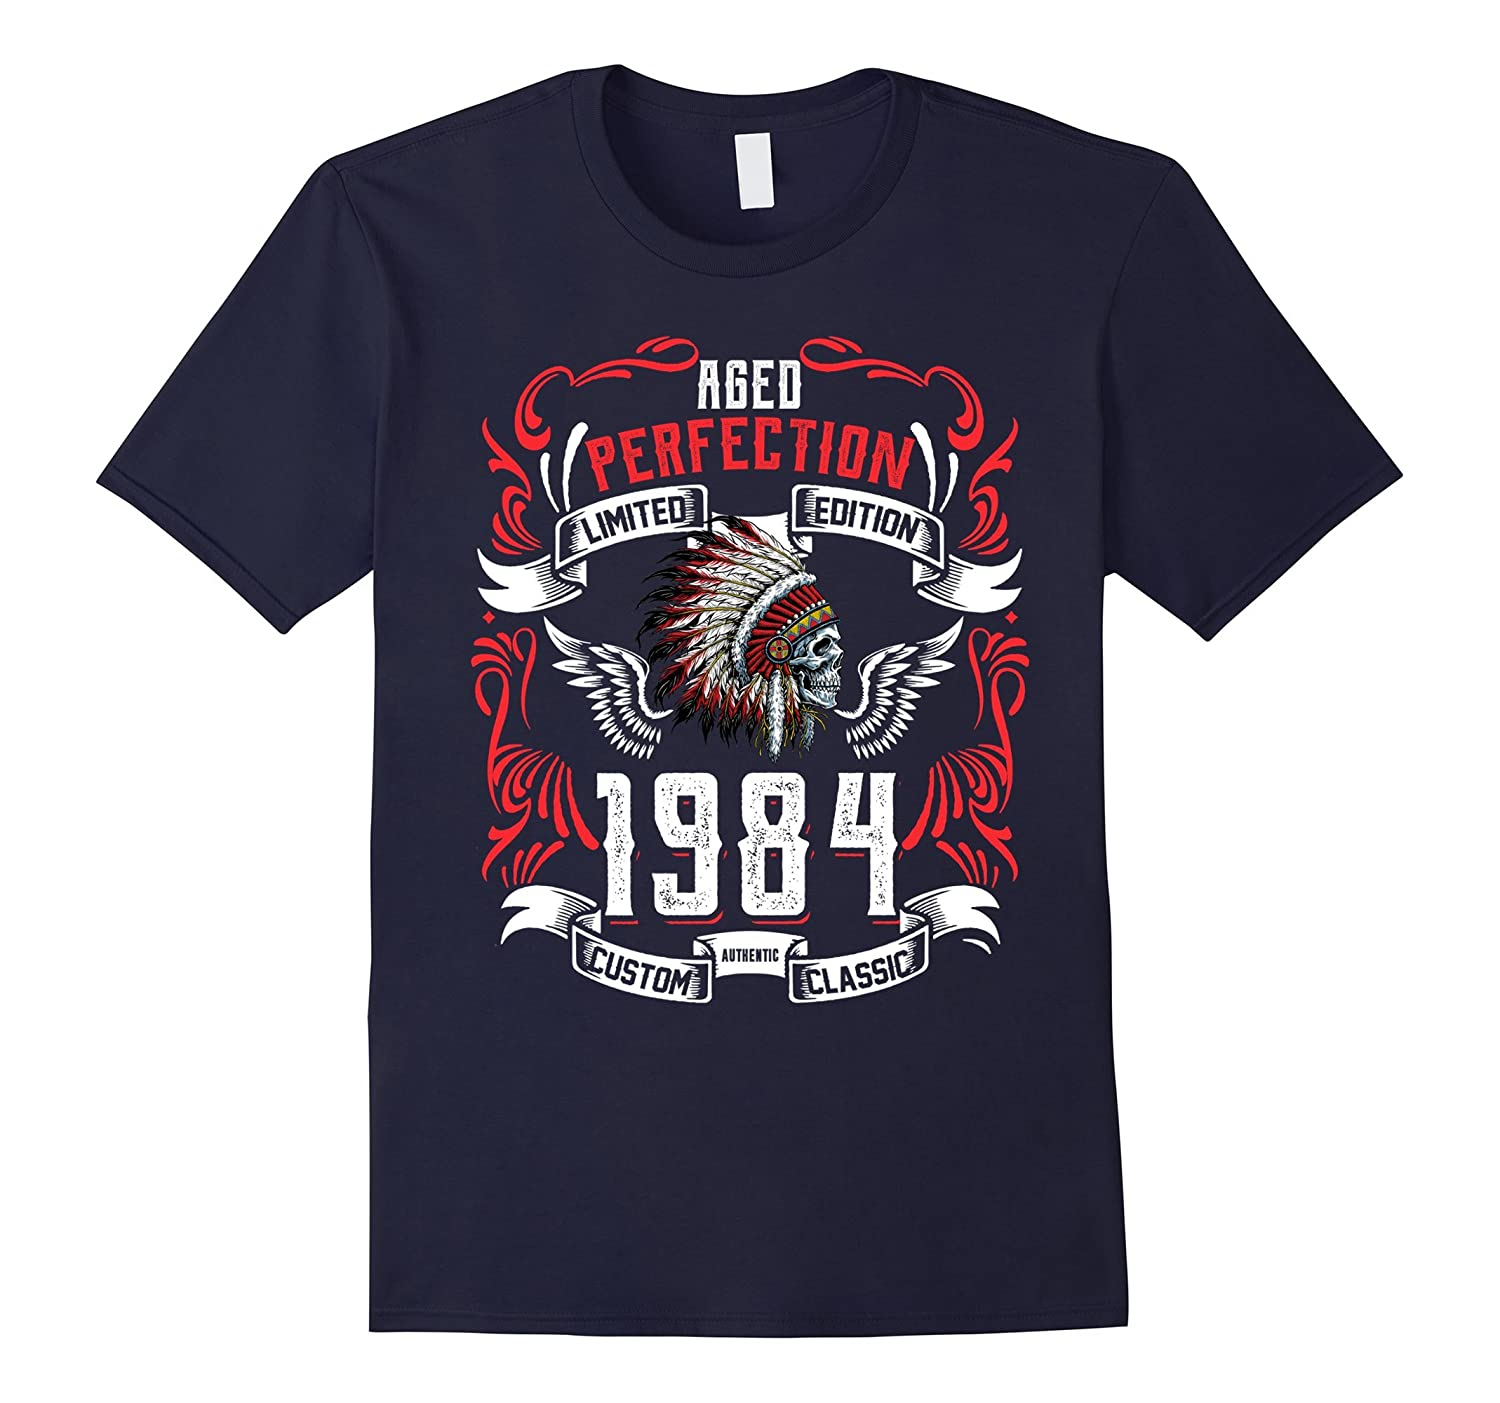 33th Birthday Limited Edition 1984 Tee Shirt-BN